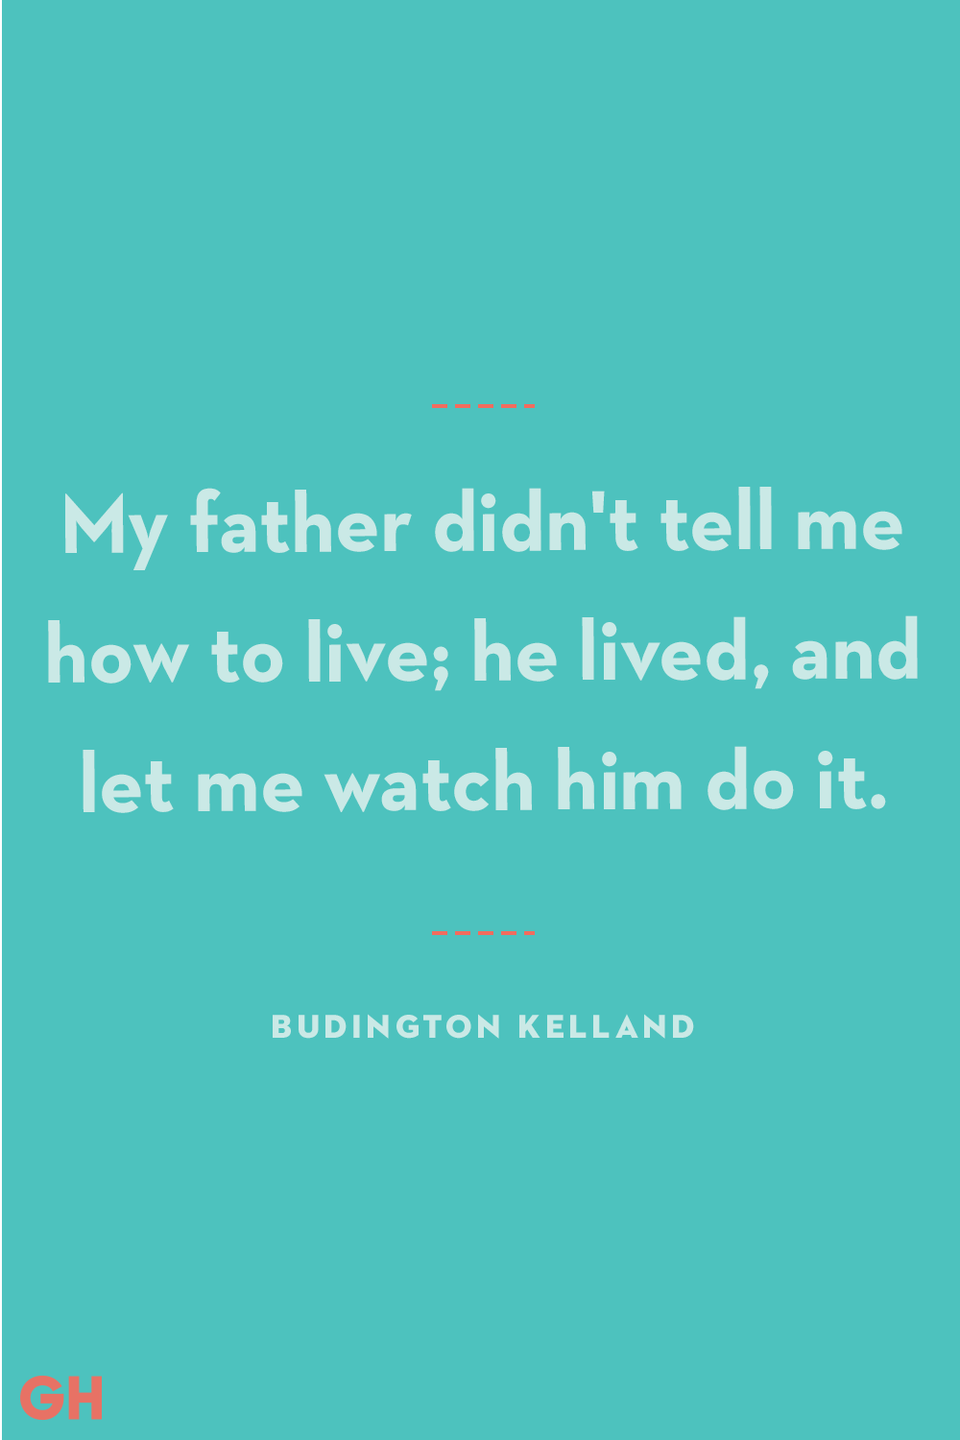 """<p>My father didn't tell me how to live; he lived, and let me watch him do it.</p><p><strong>RELATED:</strong> <a href=""""https://www.goodhousekeeping.com/holidays/fathers-day/g336/fathers-day-gift-guide/"""" rel=""""nofollow noopener"""" target=""""_blank"""" data-ylk=""""slk:35+ Perfect Father's Day Gift Ideas to Celebrate Dad"""" class=""""link rapid-noclick-resp"""">35+ Perfect Father's Day Gift Ideas to Celebrate Dad</a></p>"""